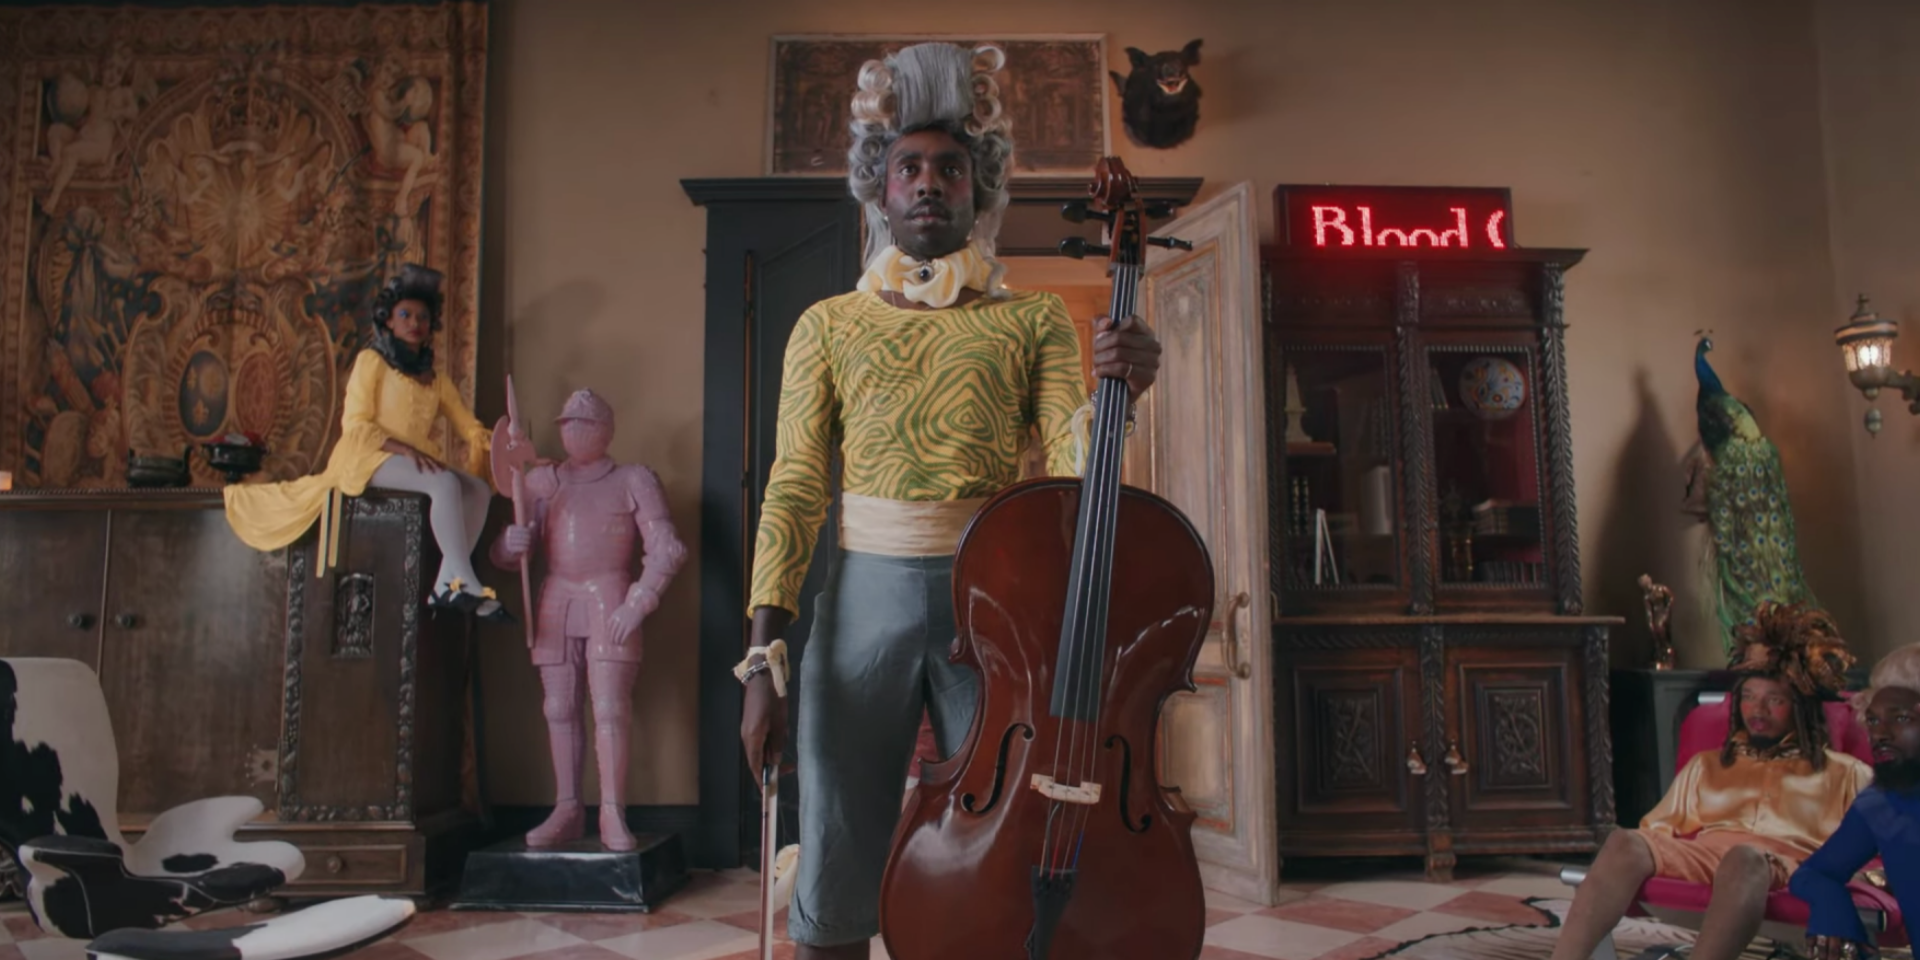 Blood Orange releases new 'Benzo' video, set in a royal court – watch